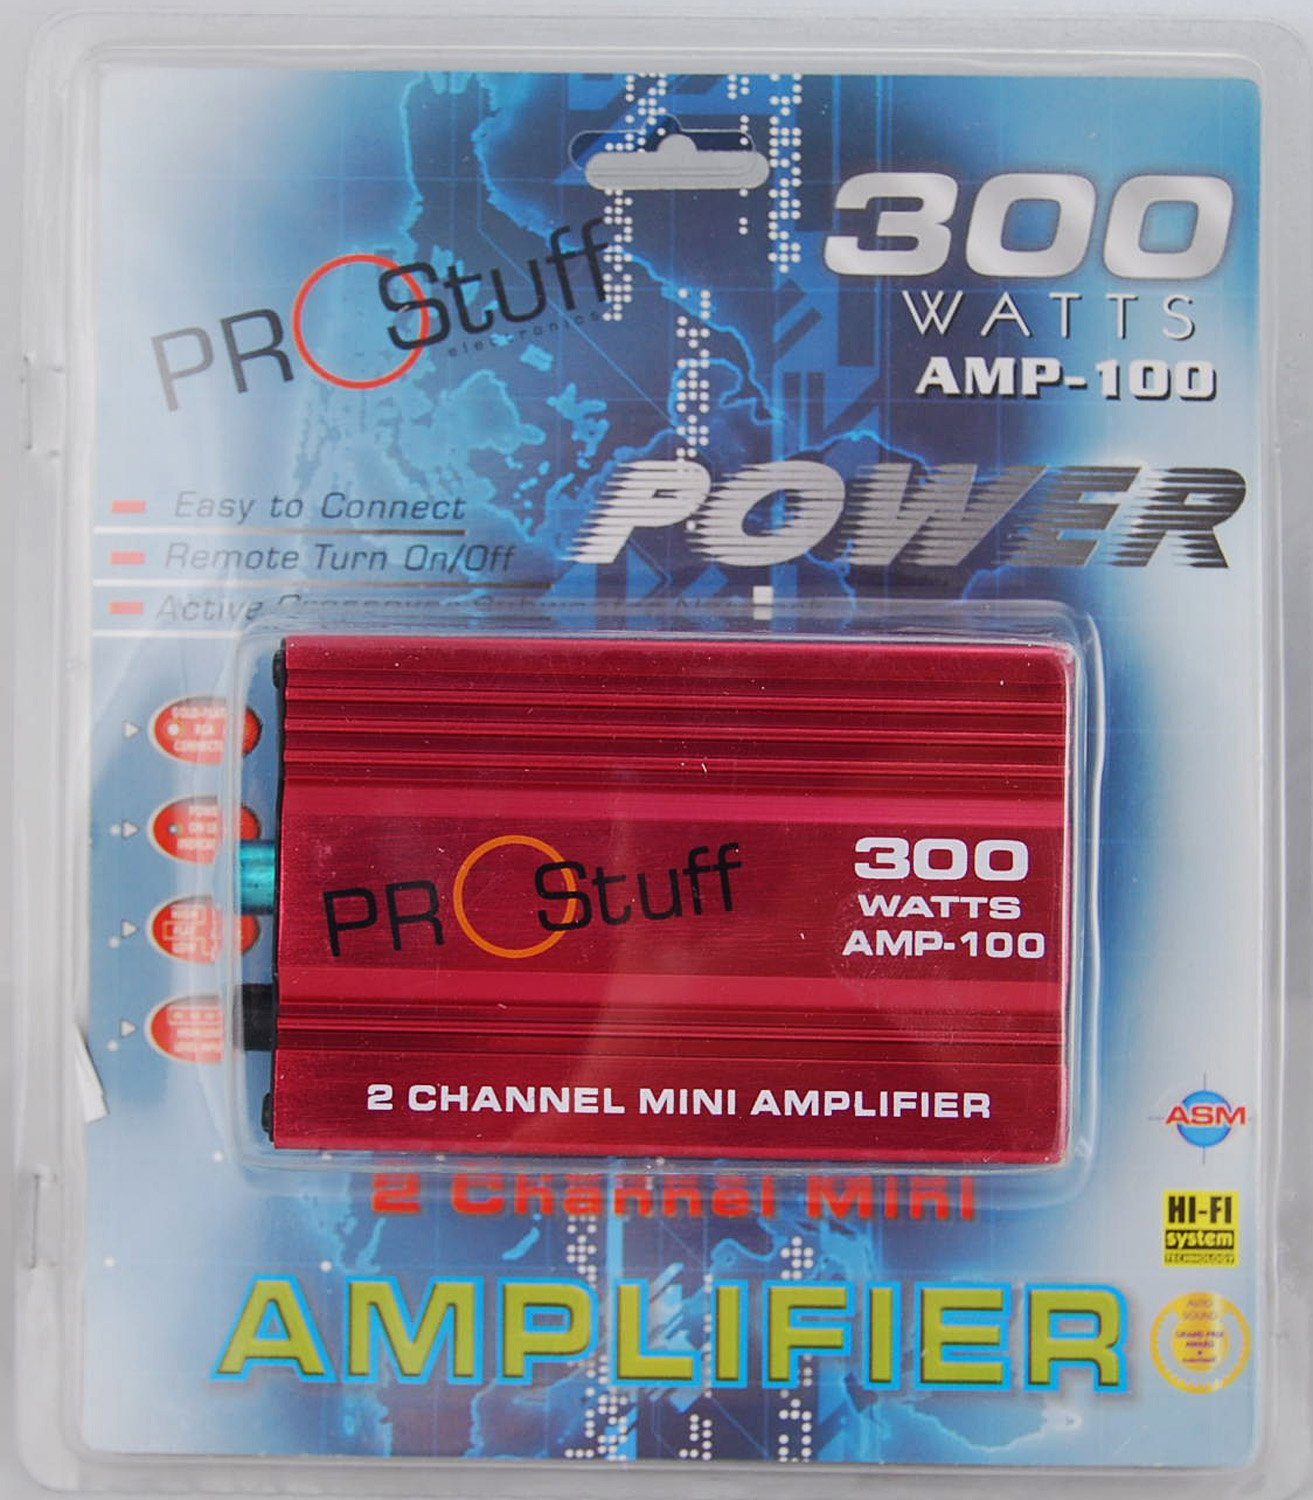 Prostuff AMP-100 300 Watt 2CH Mini Amplifier for Car and Motorcycle by Nova (Image #4)